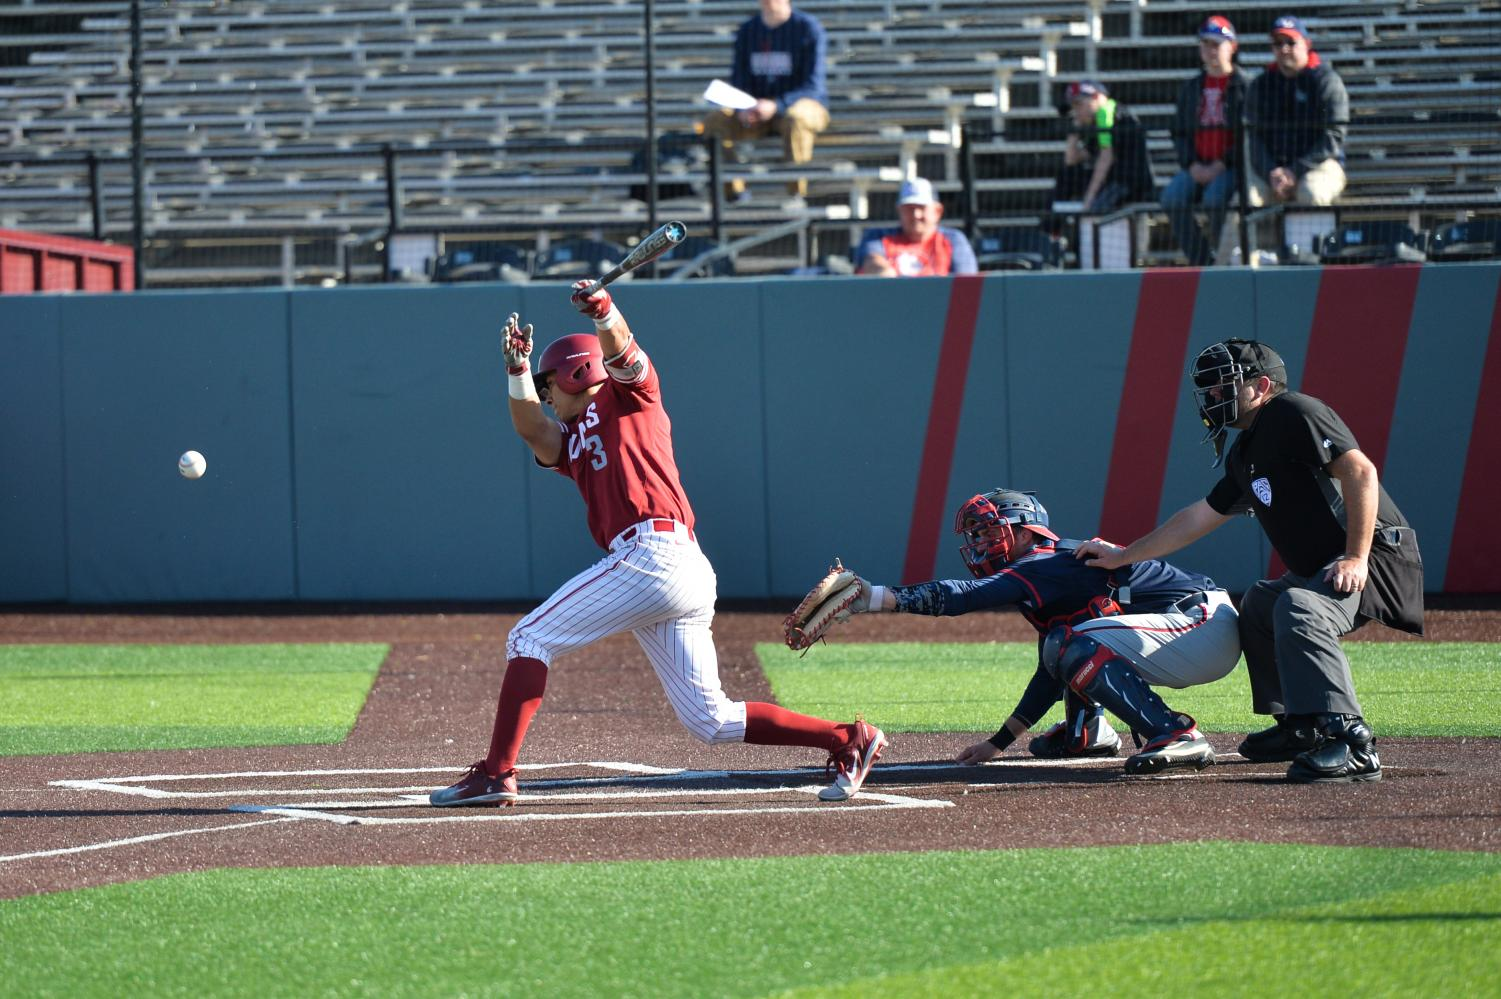 Senior infielder Andres Alvarez attempts to hit the ball in a game against Gonzaga on Oct. 21  at Bailey-Brayton Field.